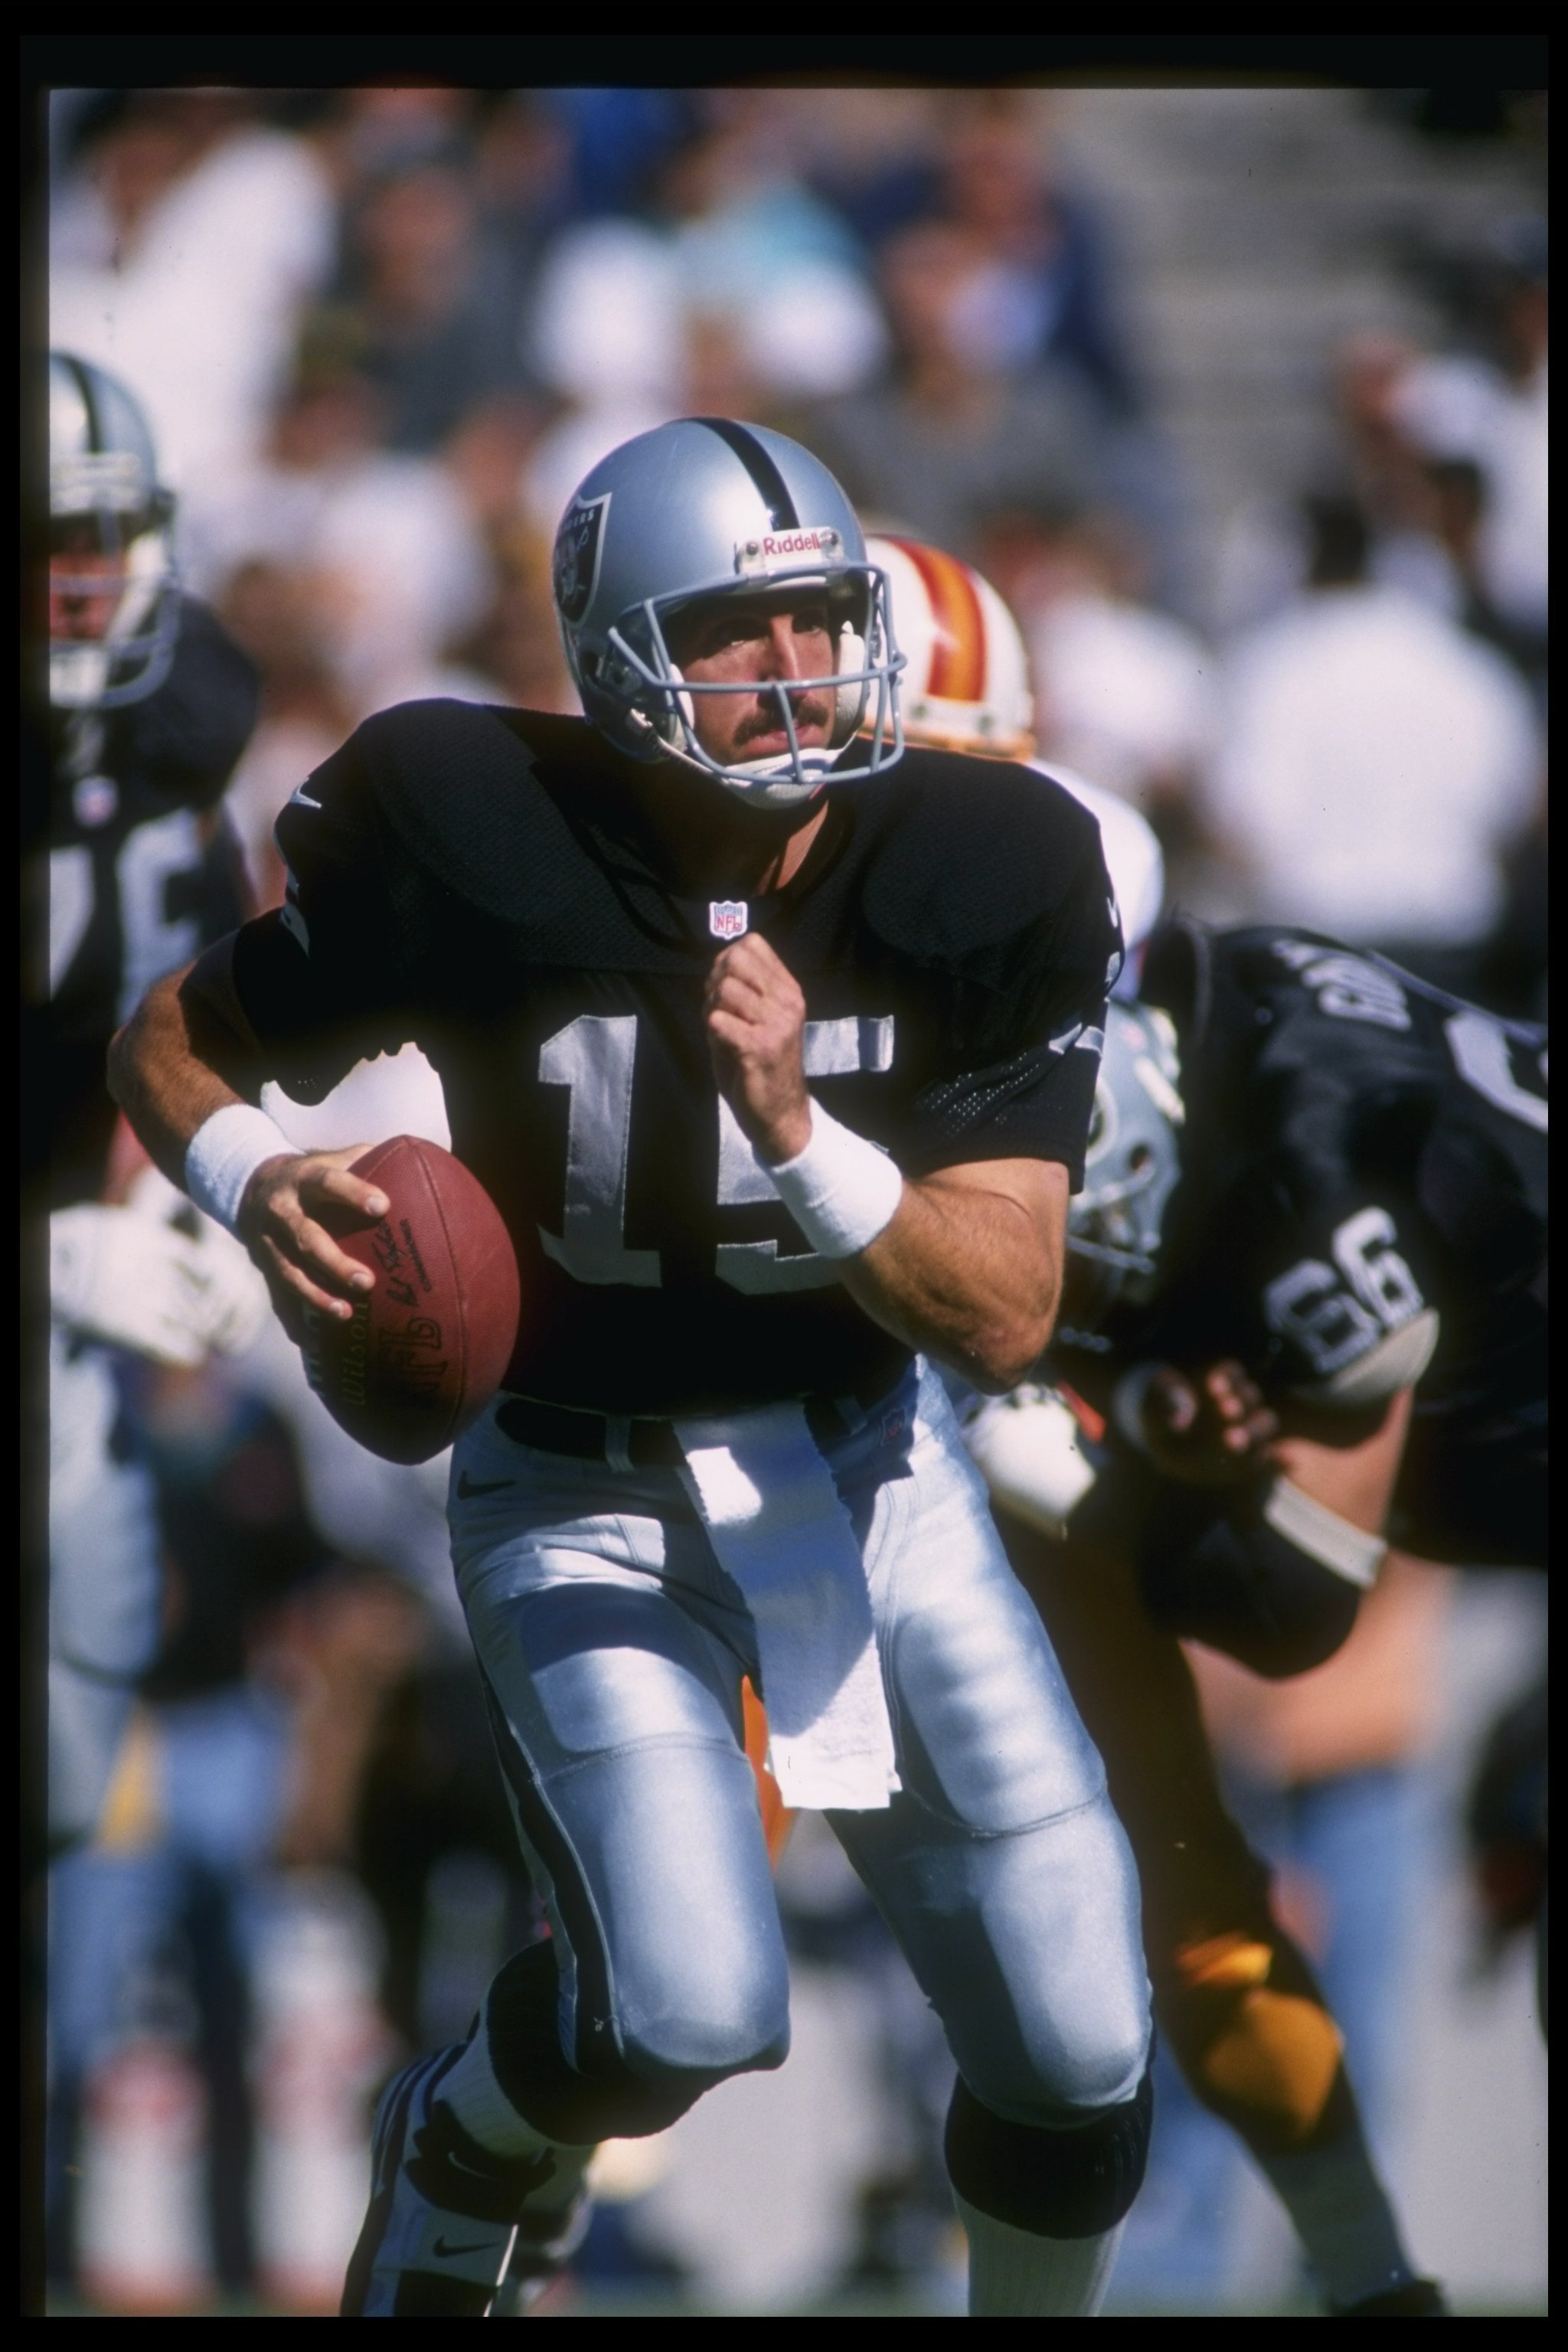 10 Nov 1996 Quarterback Jeff Hostetler Of The Oakland Raiders Looks To Pass Ball